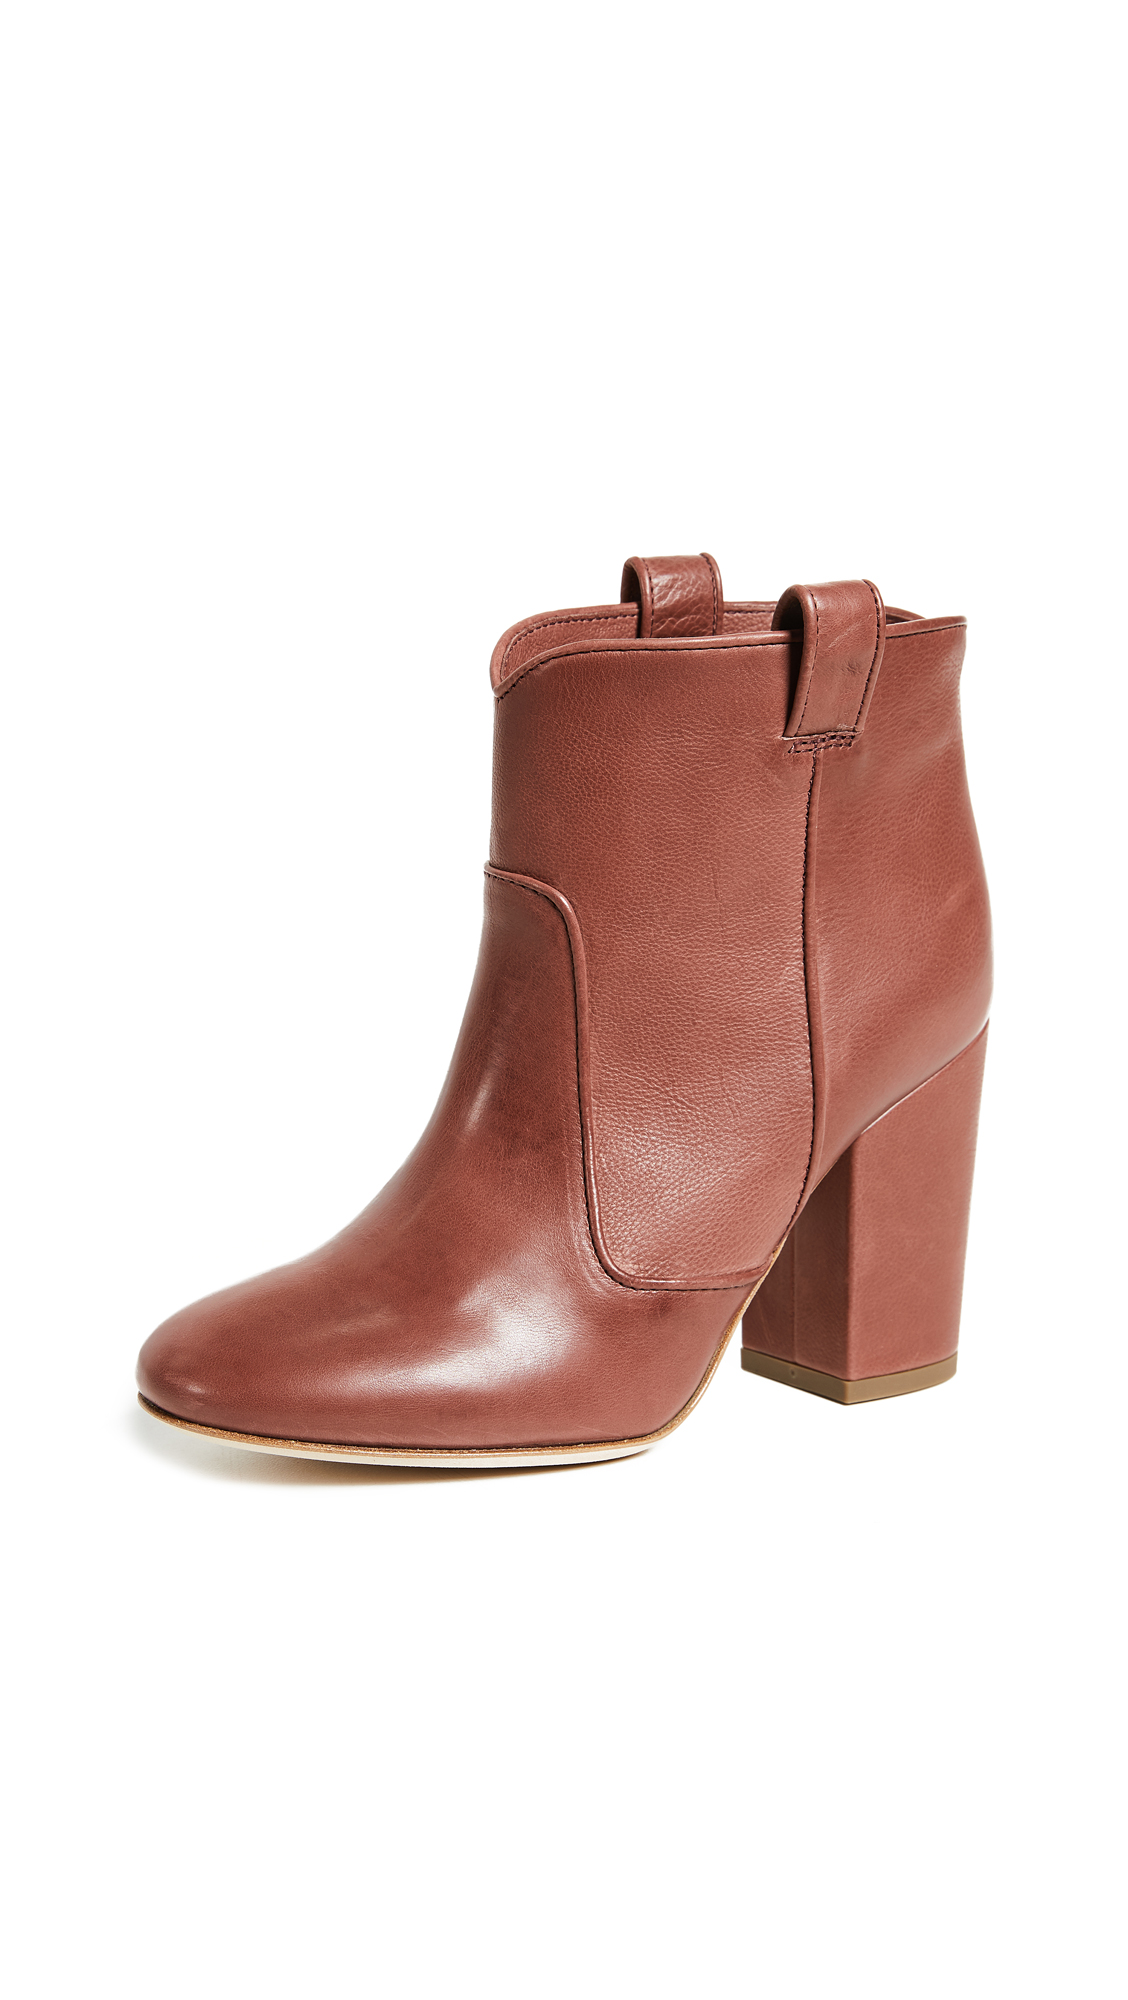 Laurence Dacade Pete Booties - Chestnut